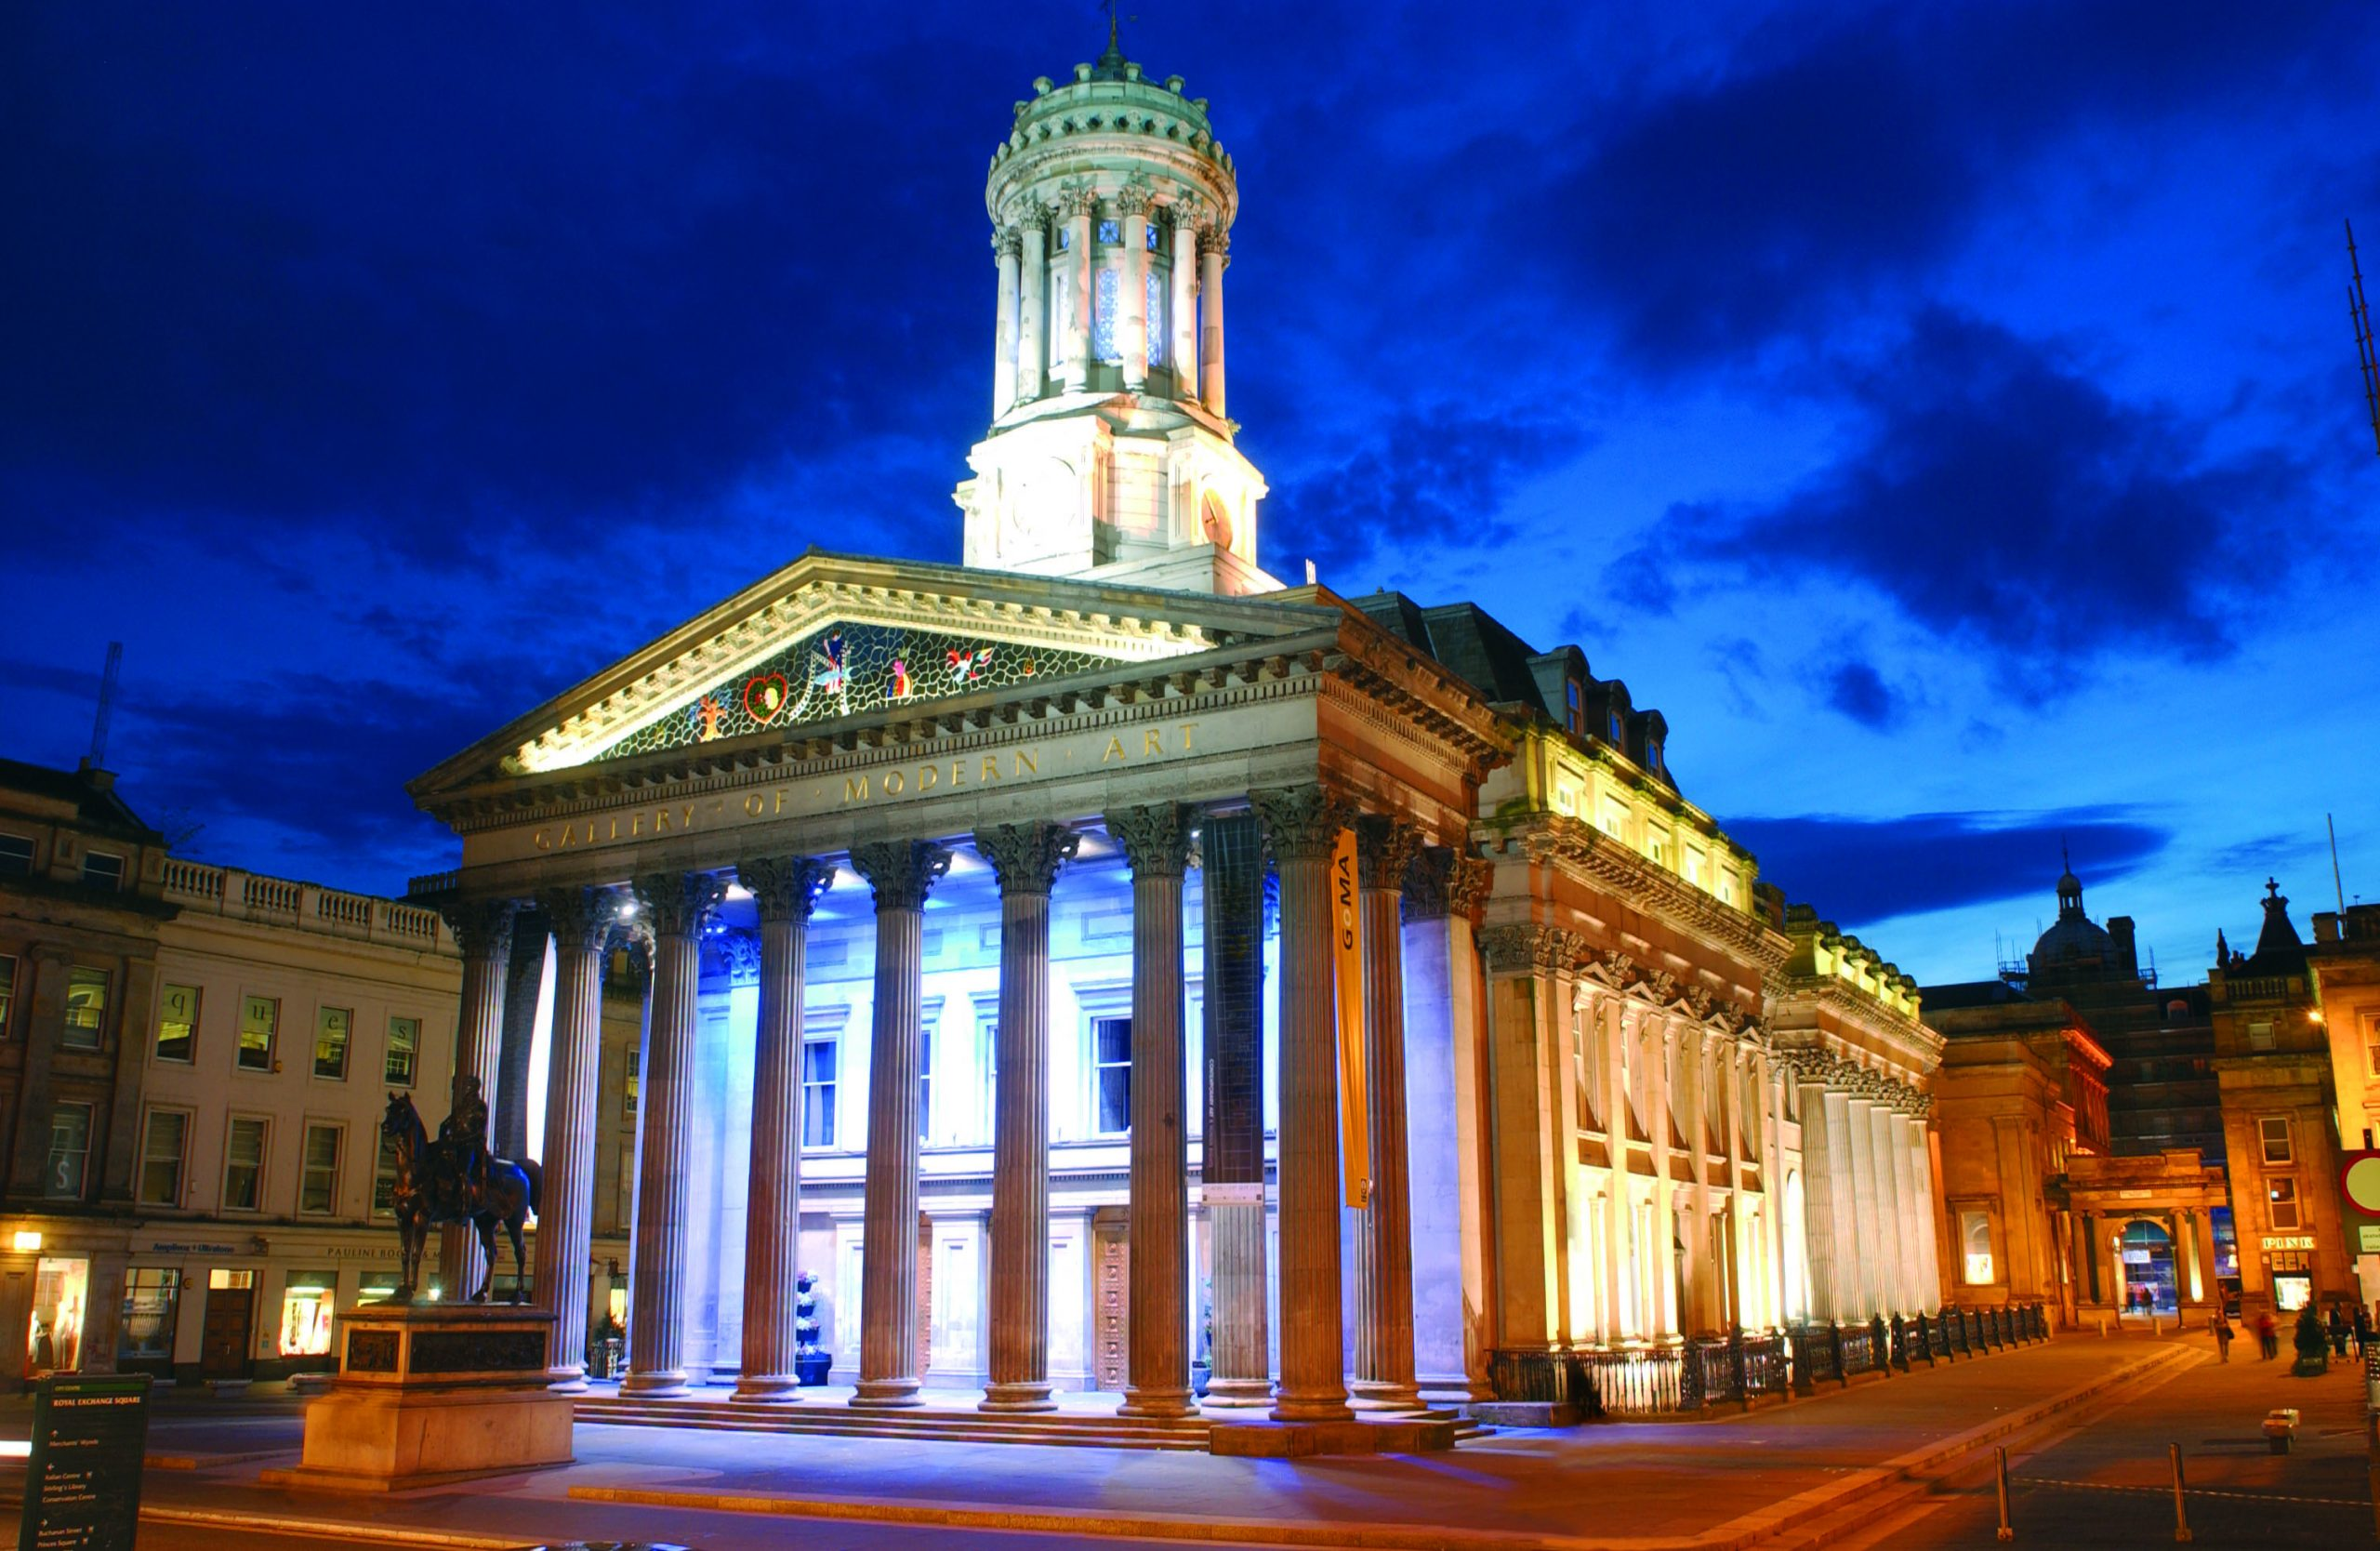 Glasgow's Gallery of Modern Art (Goma) is one of the sites run by Glasgow Life